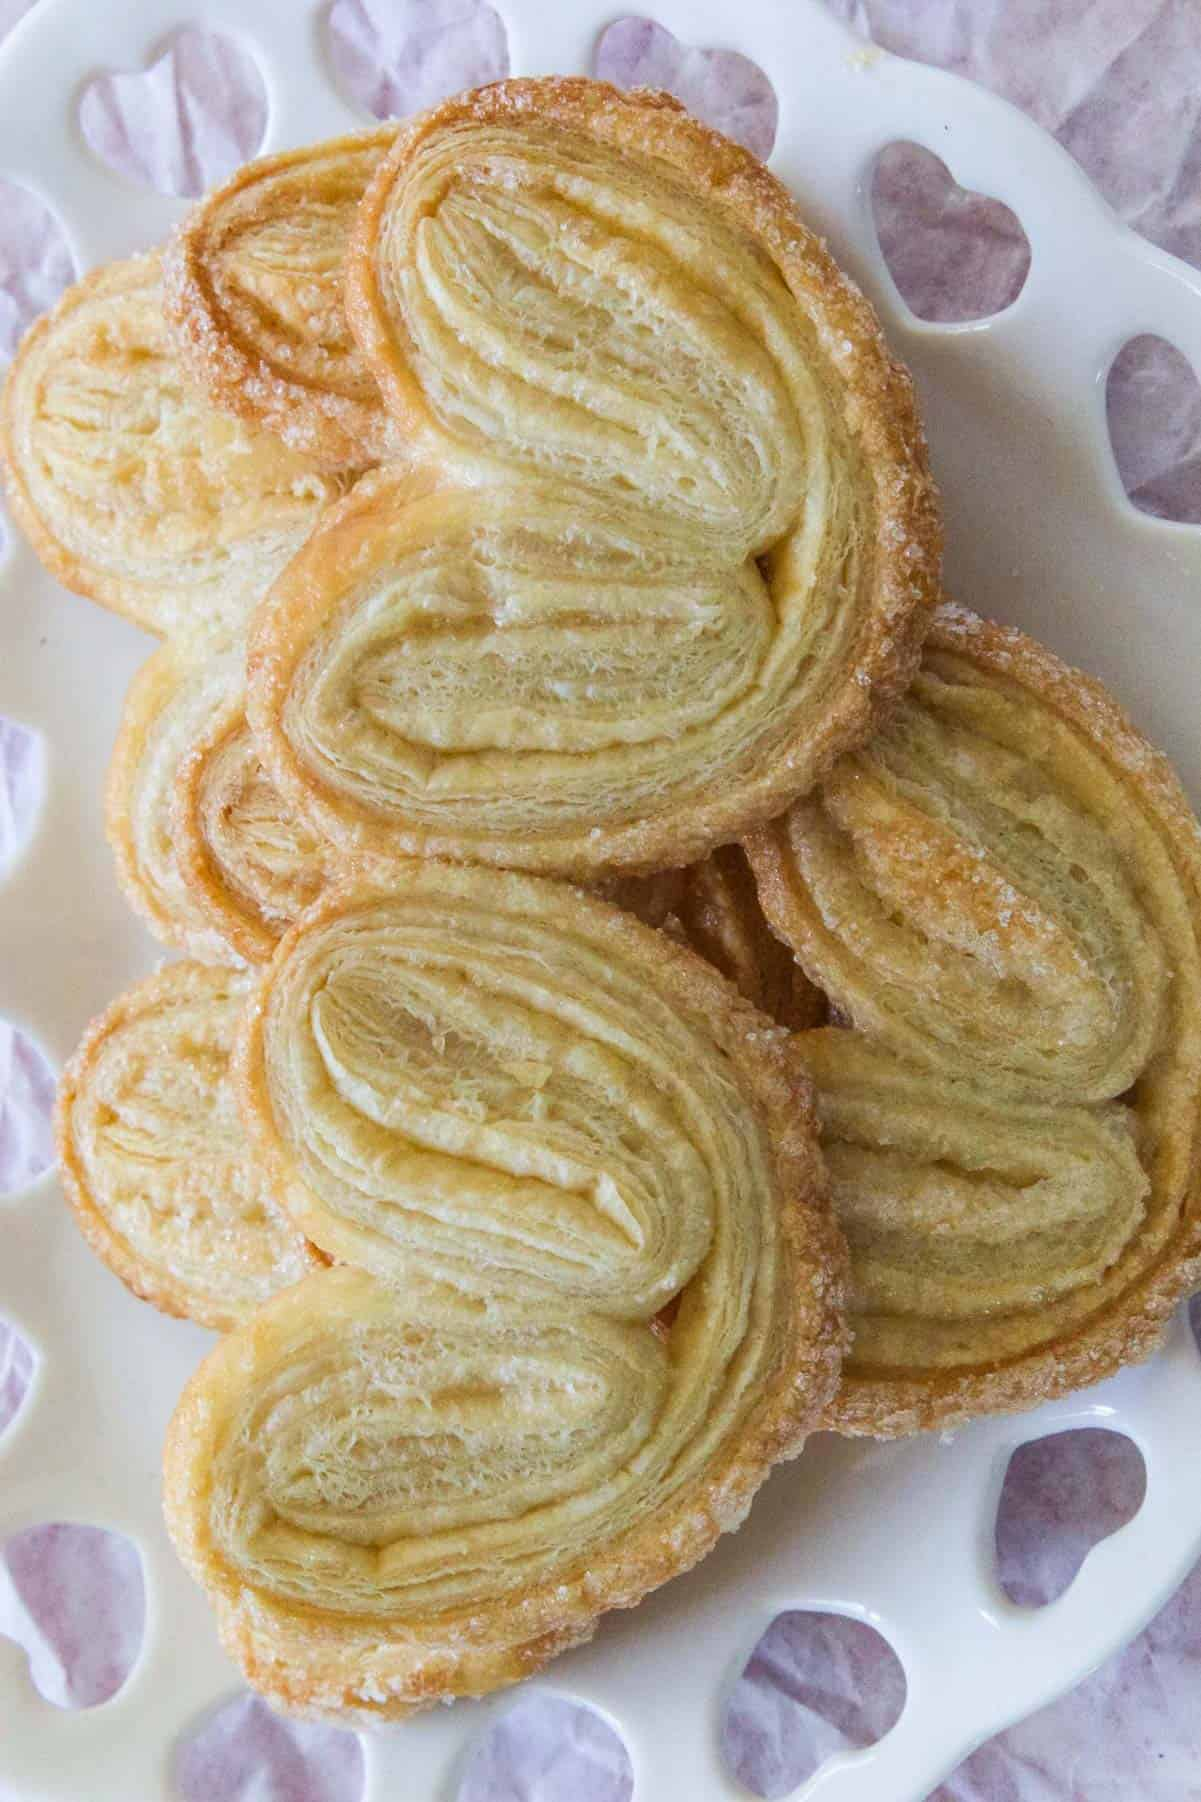 A white heart shaped dish filled with fresh baked palmiers.